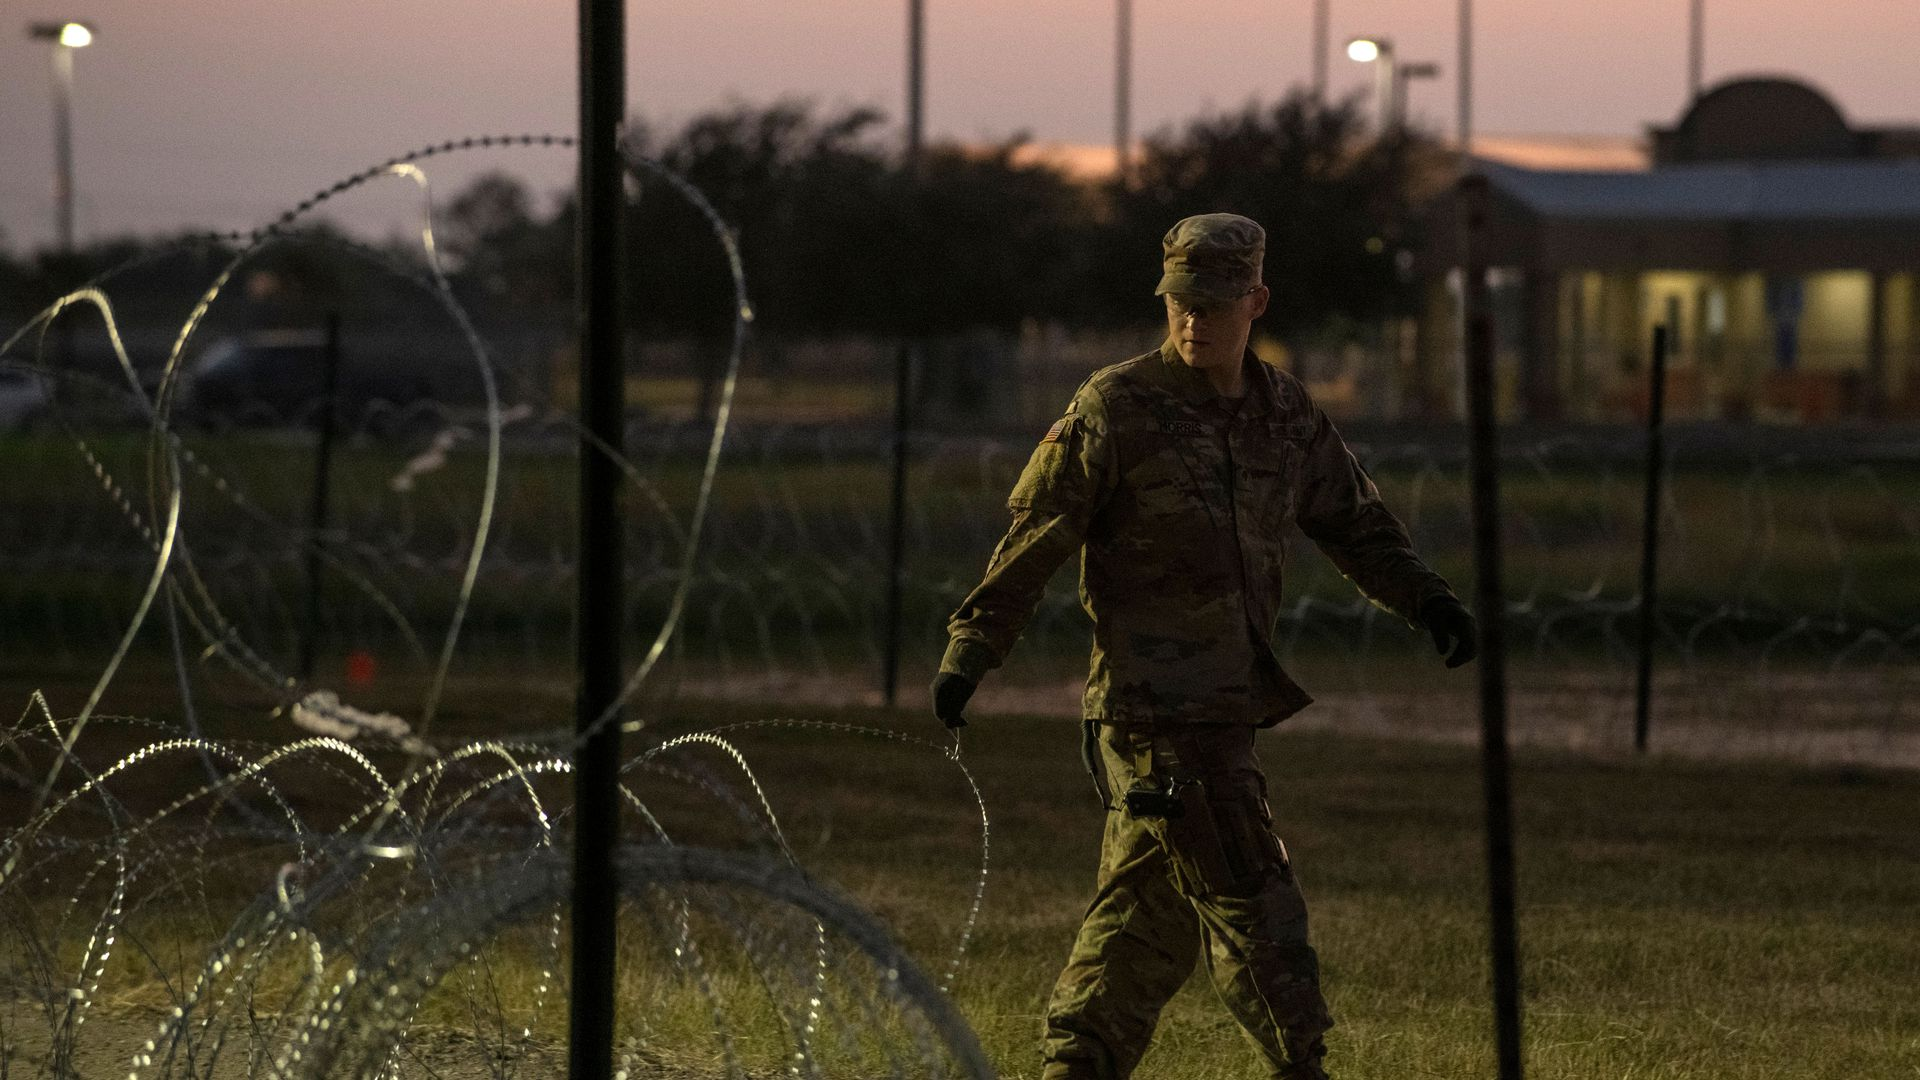 axios.com - Troops deployed to U.S.-Mexico border lack hot food, electricity